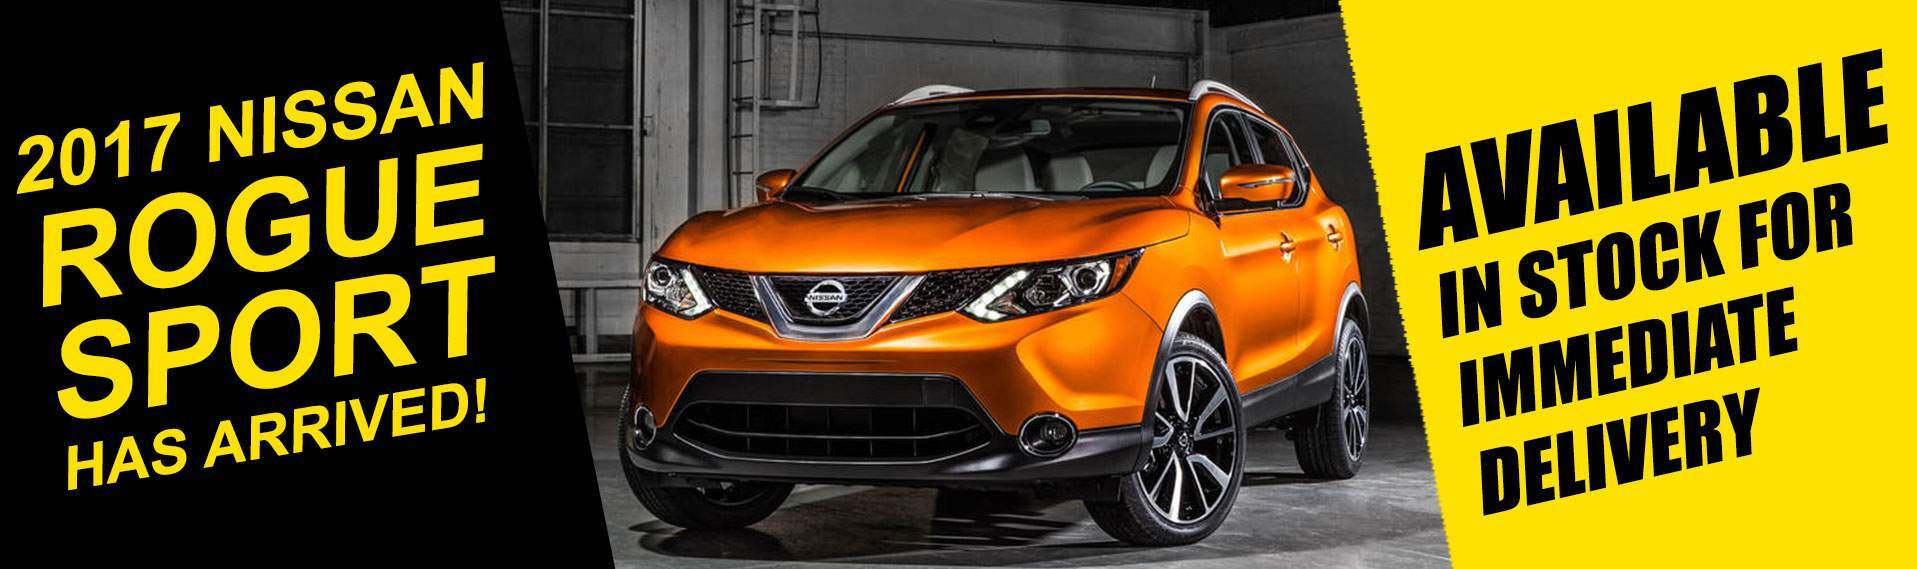 The Autobarn Nissan Rogue Sport banner